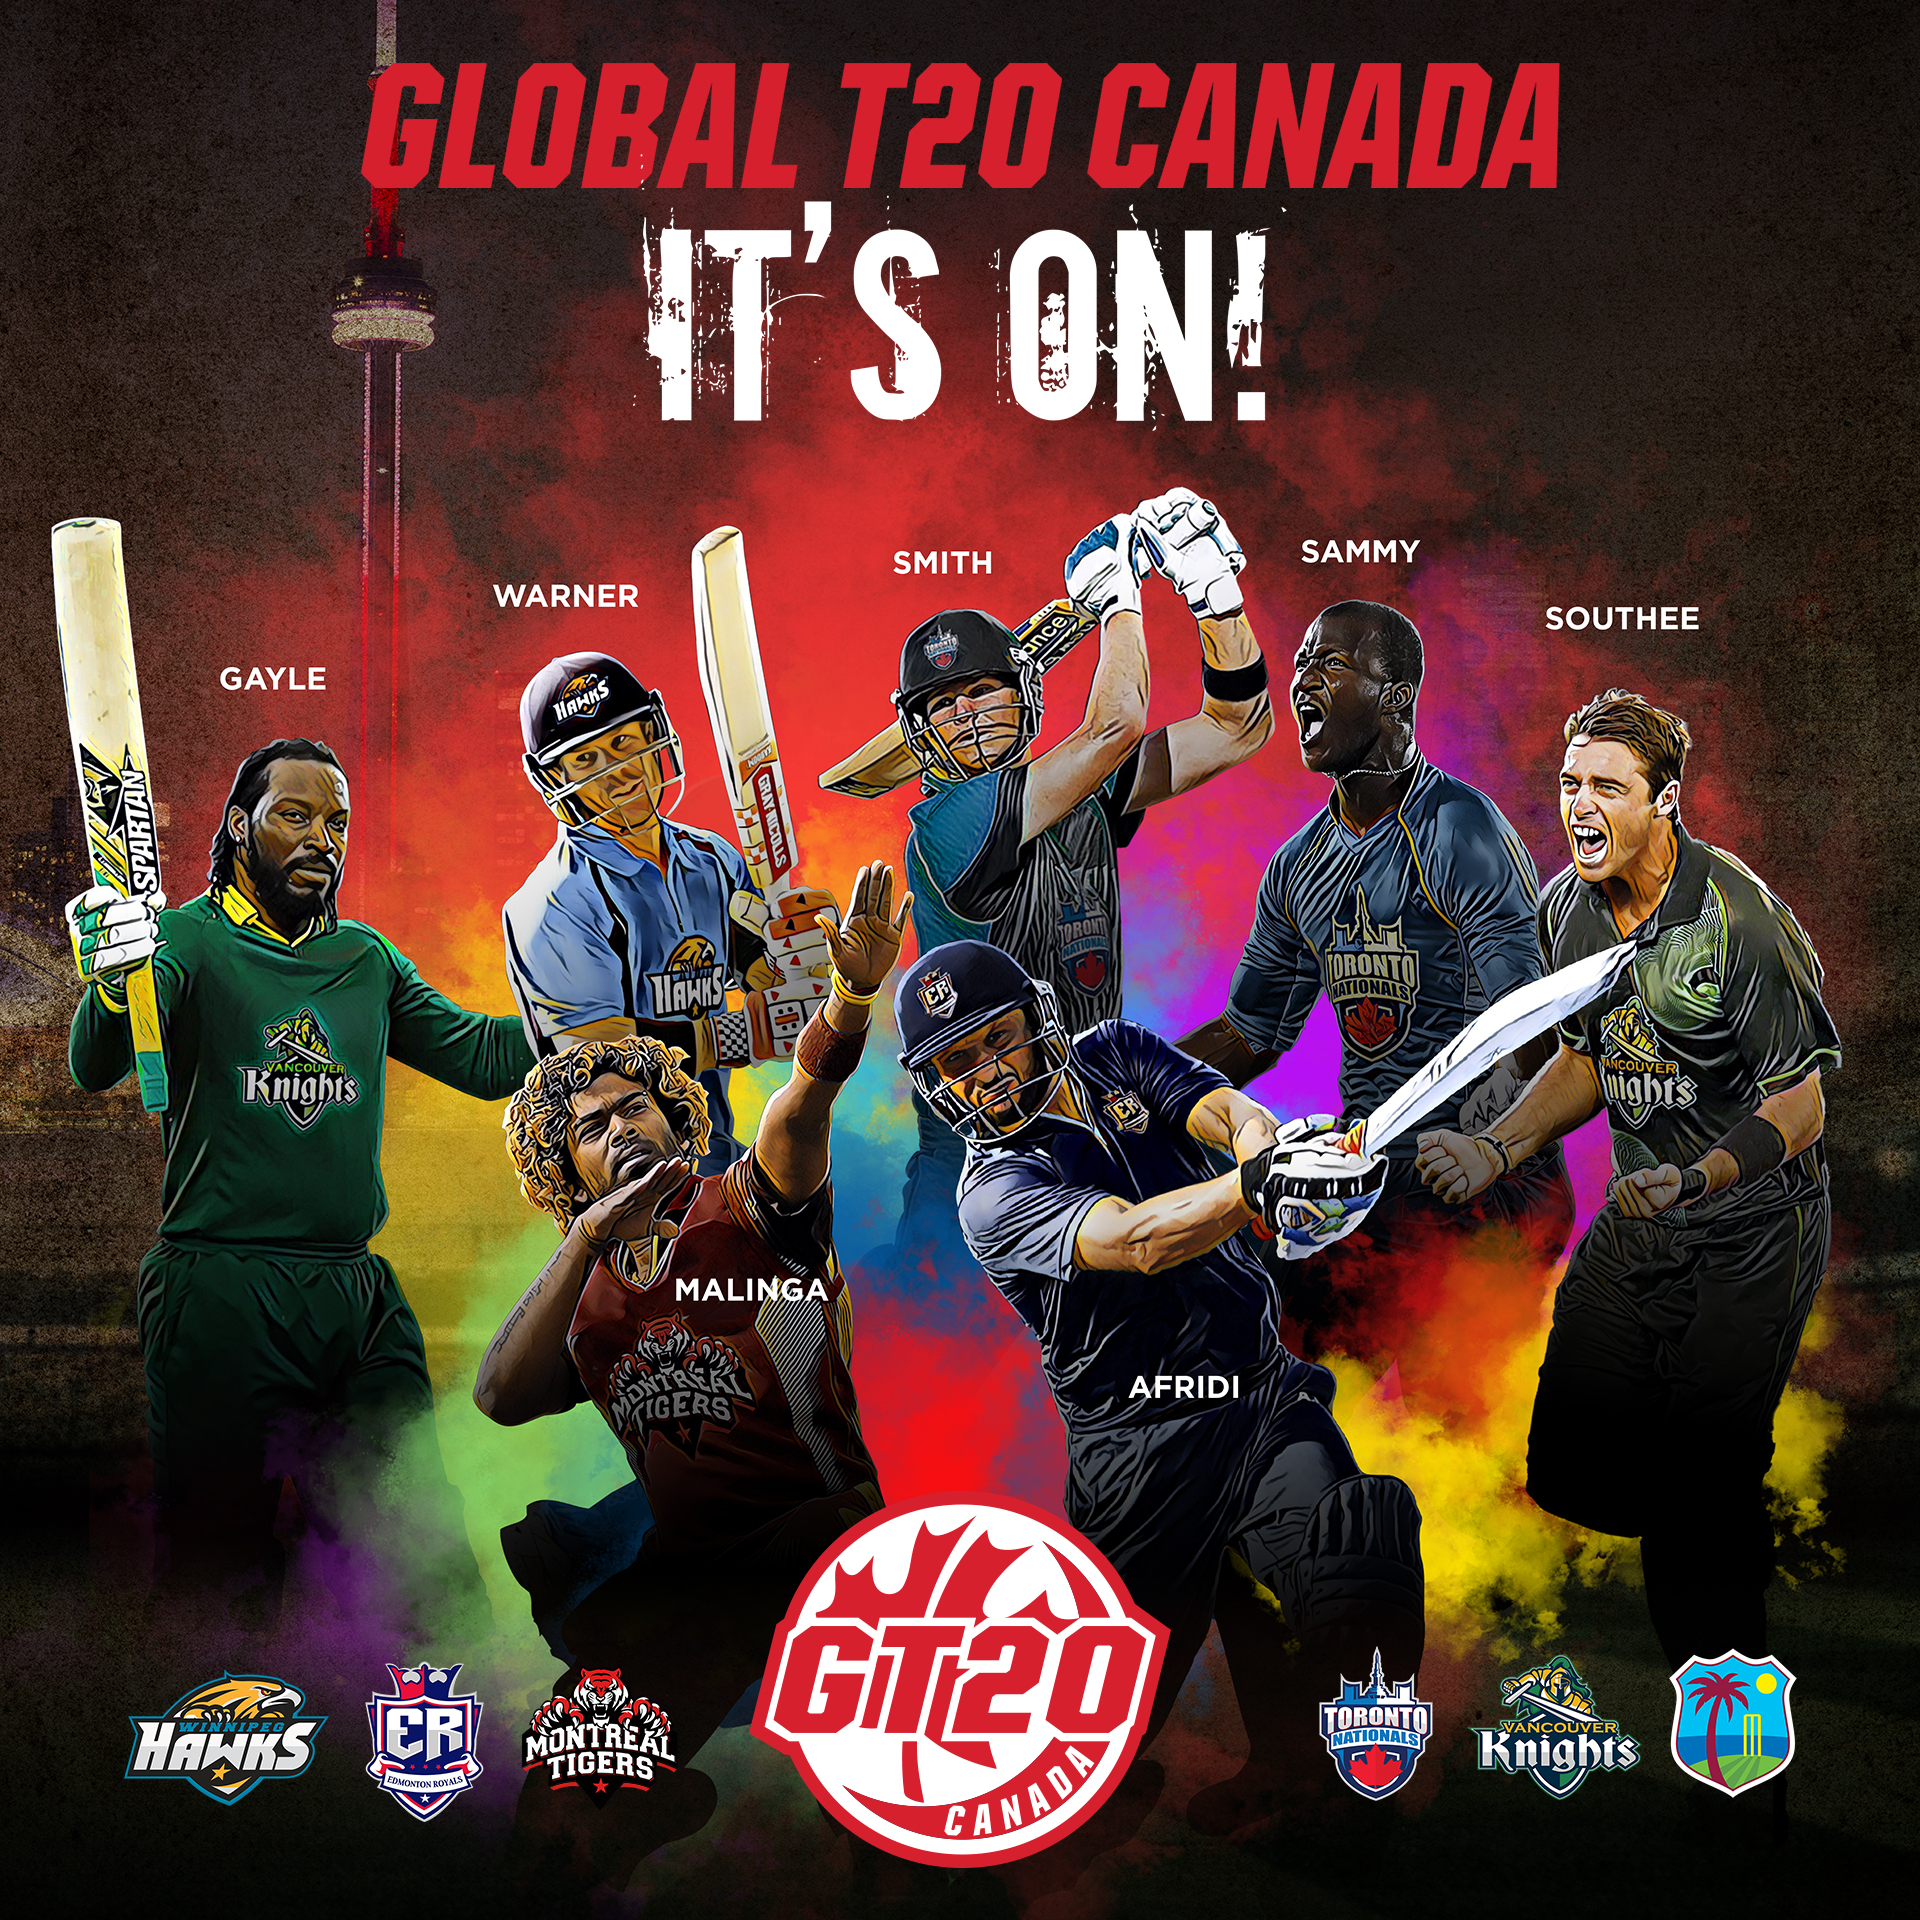 global-t20-canada-2018-tv-guide.jpg